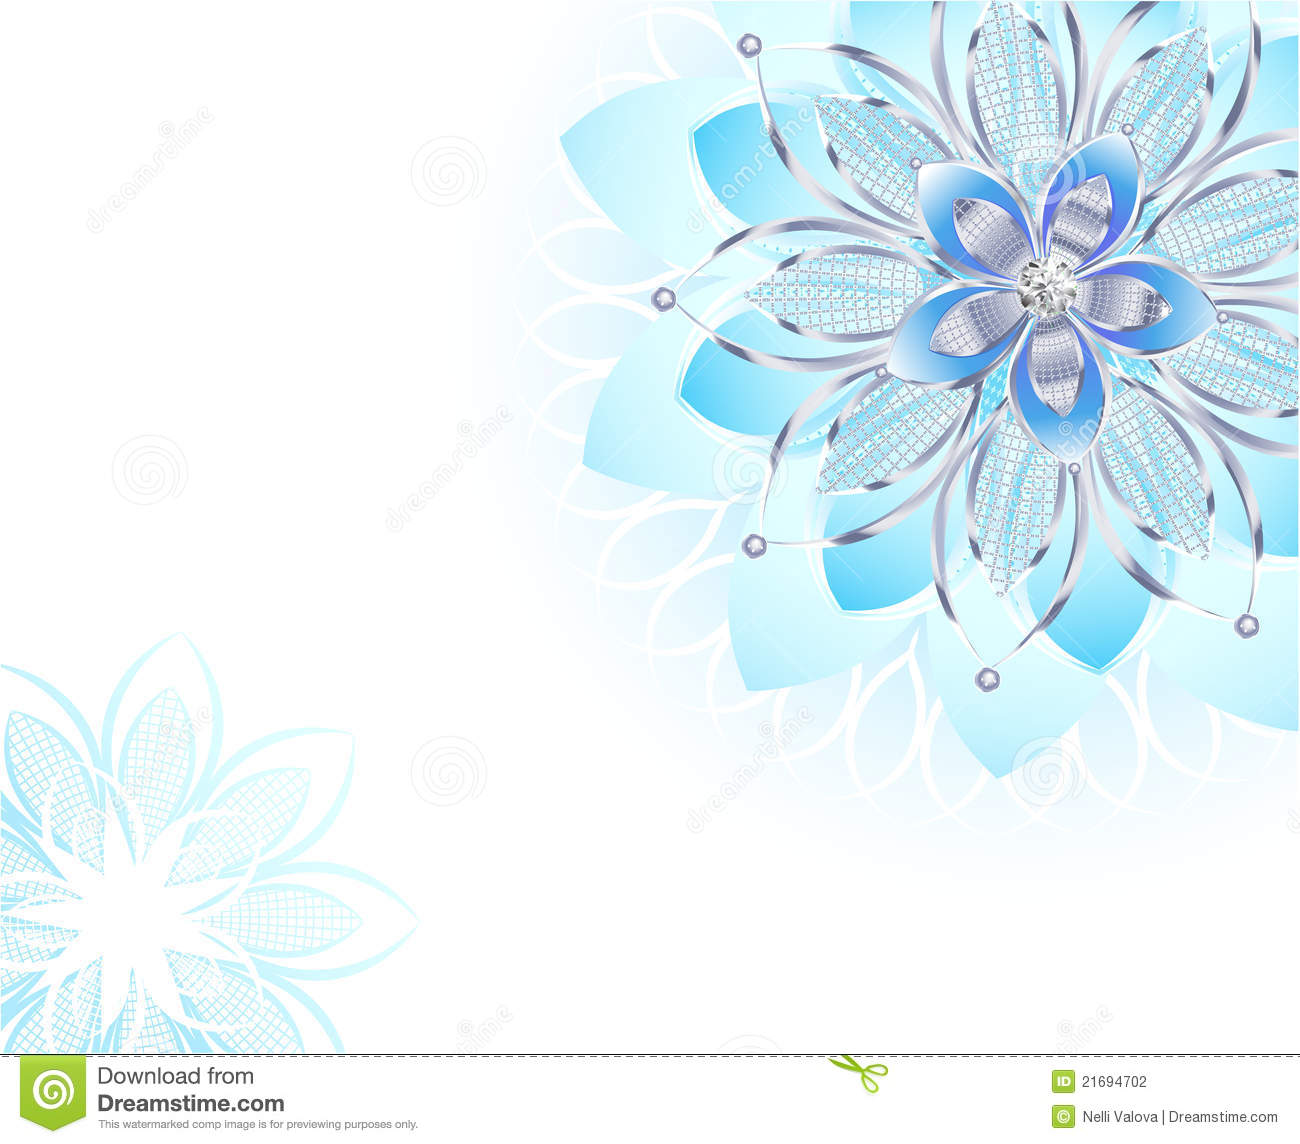 Abstract Light Blue Flower Stock Vector Illustration Of Delicate